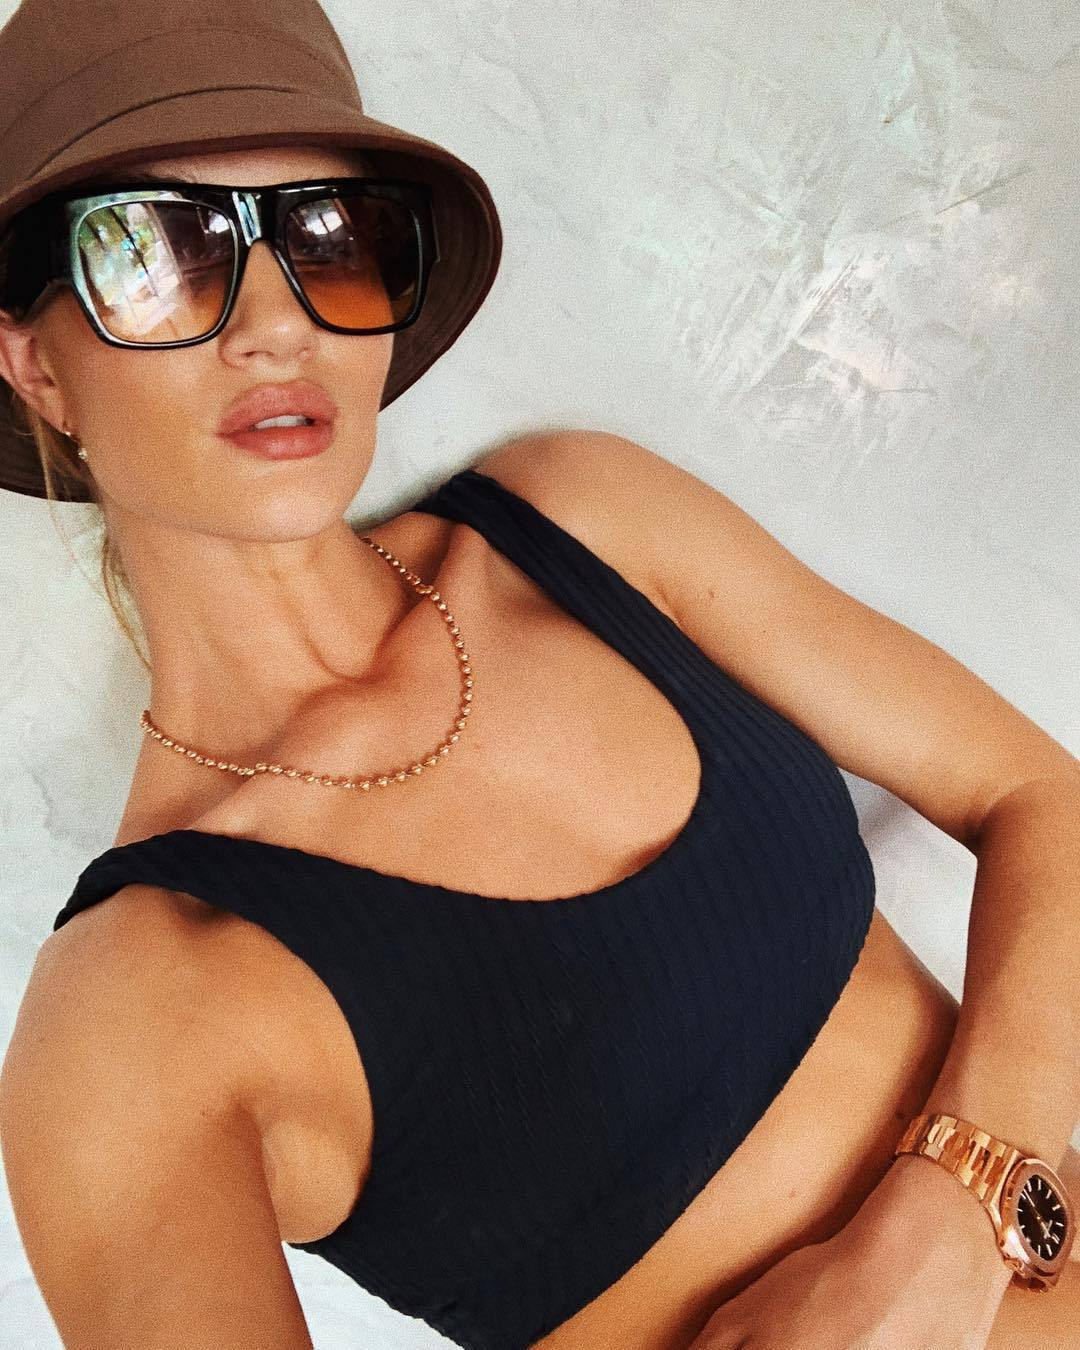 hat brown bucket hat rosie huntington-whiteley model off-duty celebrity bikini top bikini bottoms black bikini